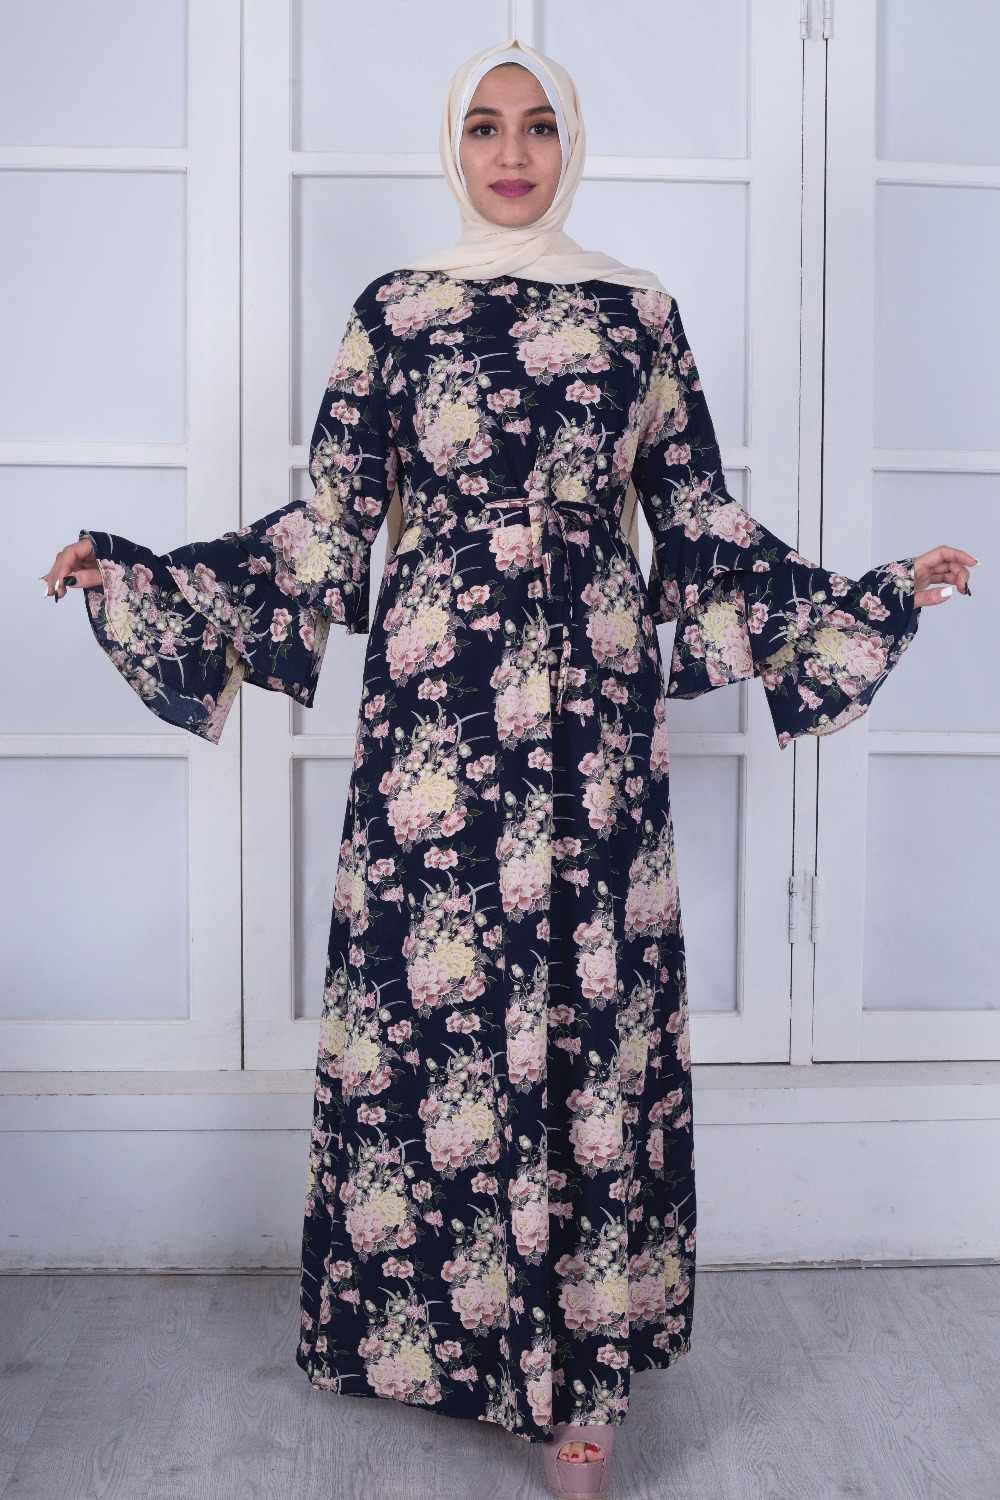 e7a90ae2f2e19 Muslim Print Abaya Flare Sleeve Maxi Dress Long Robes Tunic Kimono Ramadan  Islamic Prayer Clothing Worship Service Wholesale